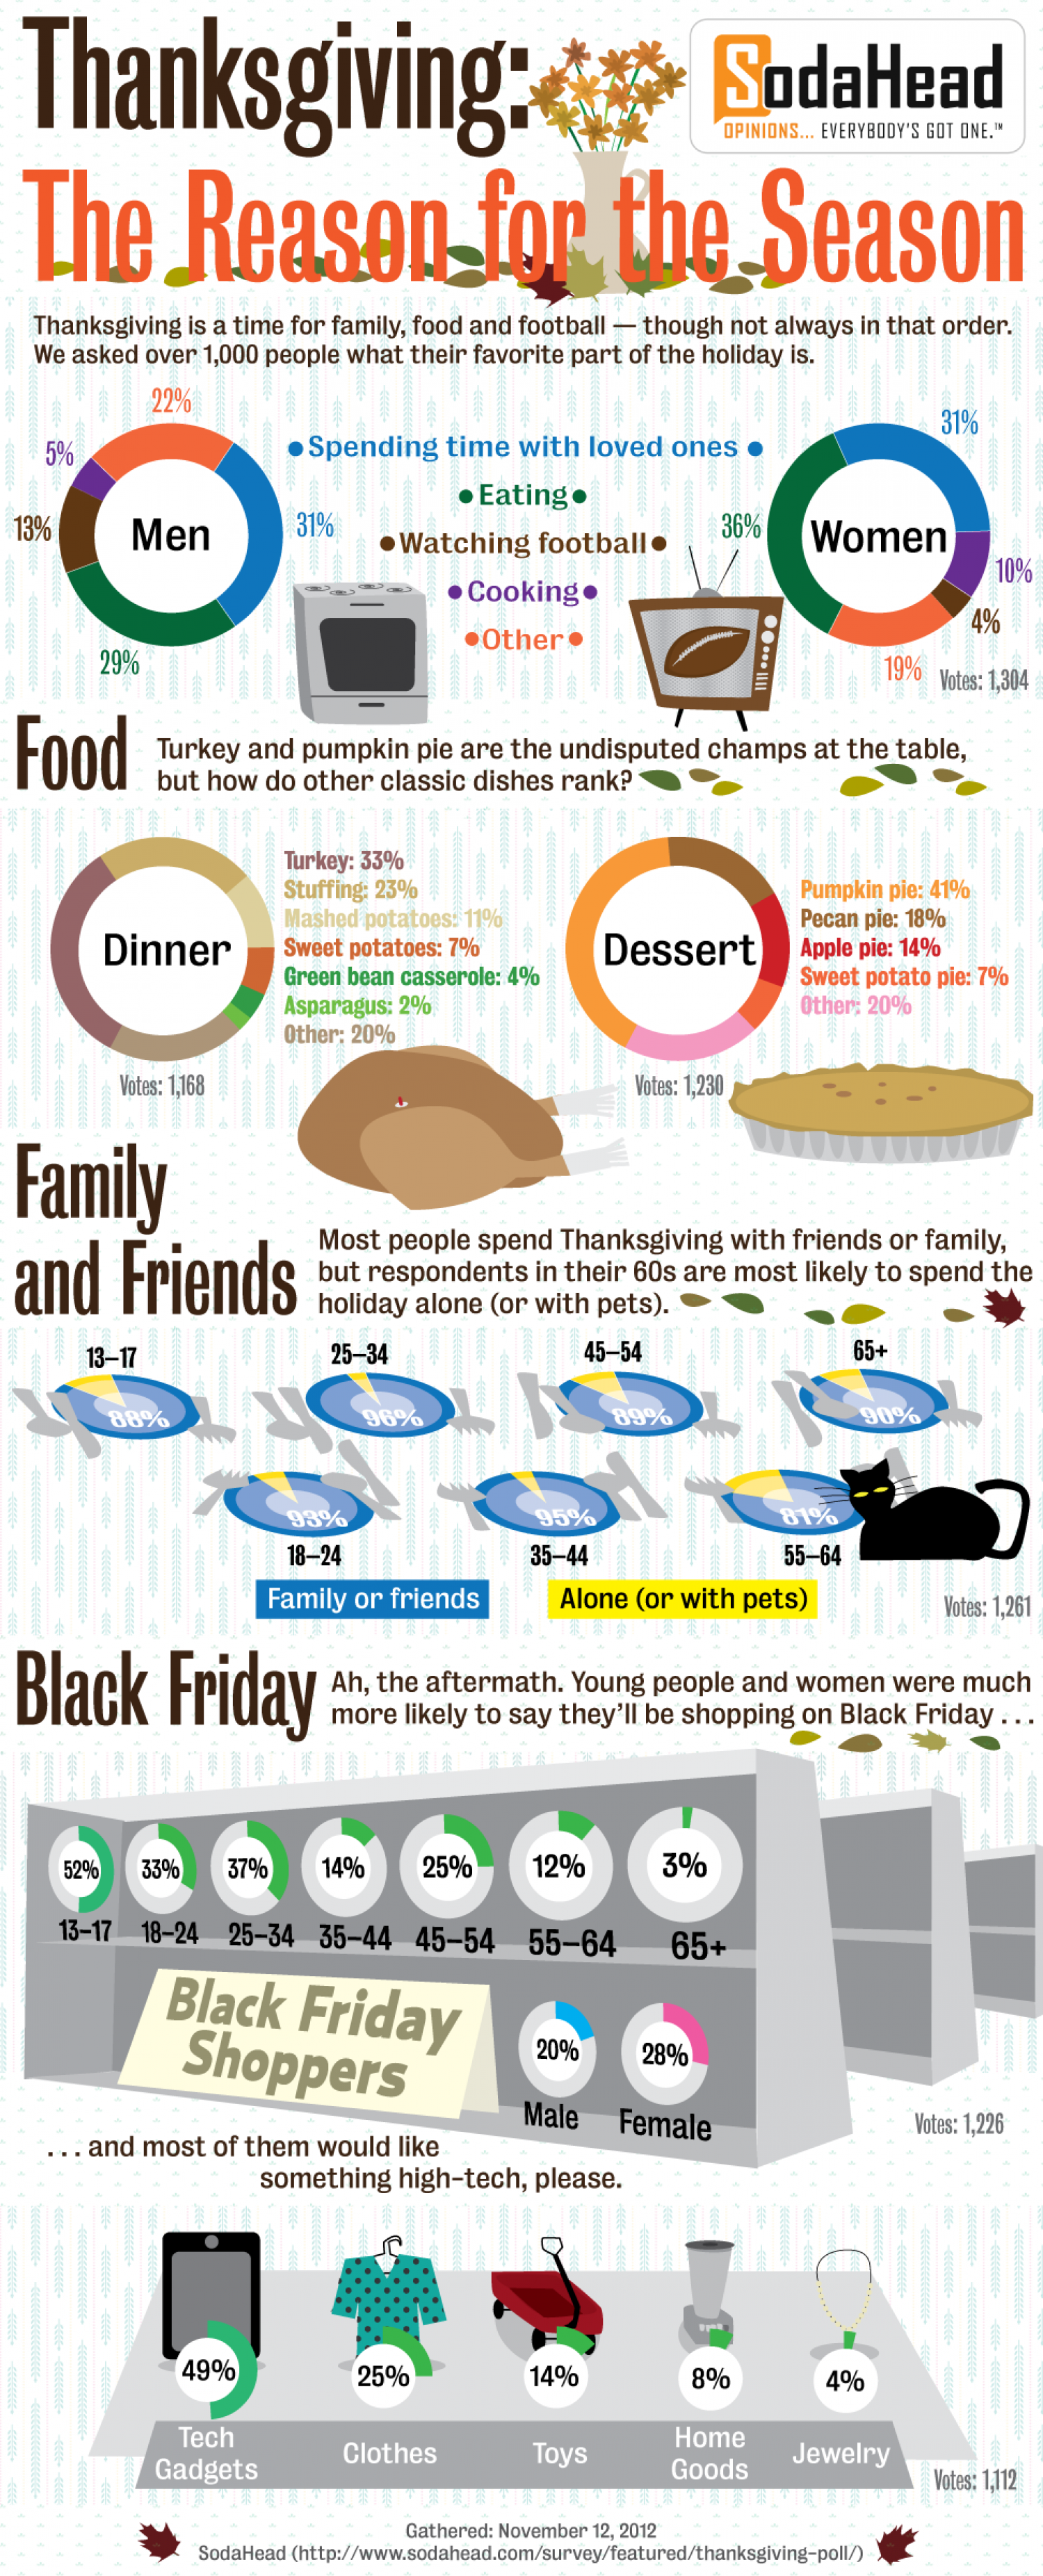 Thanksgiving: The Reason for the Season Infographic